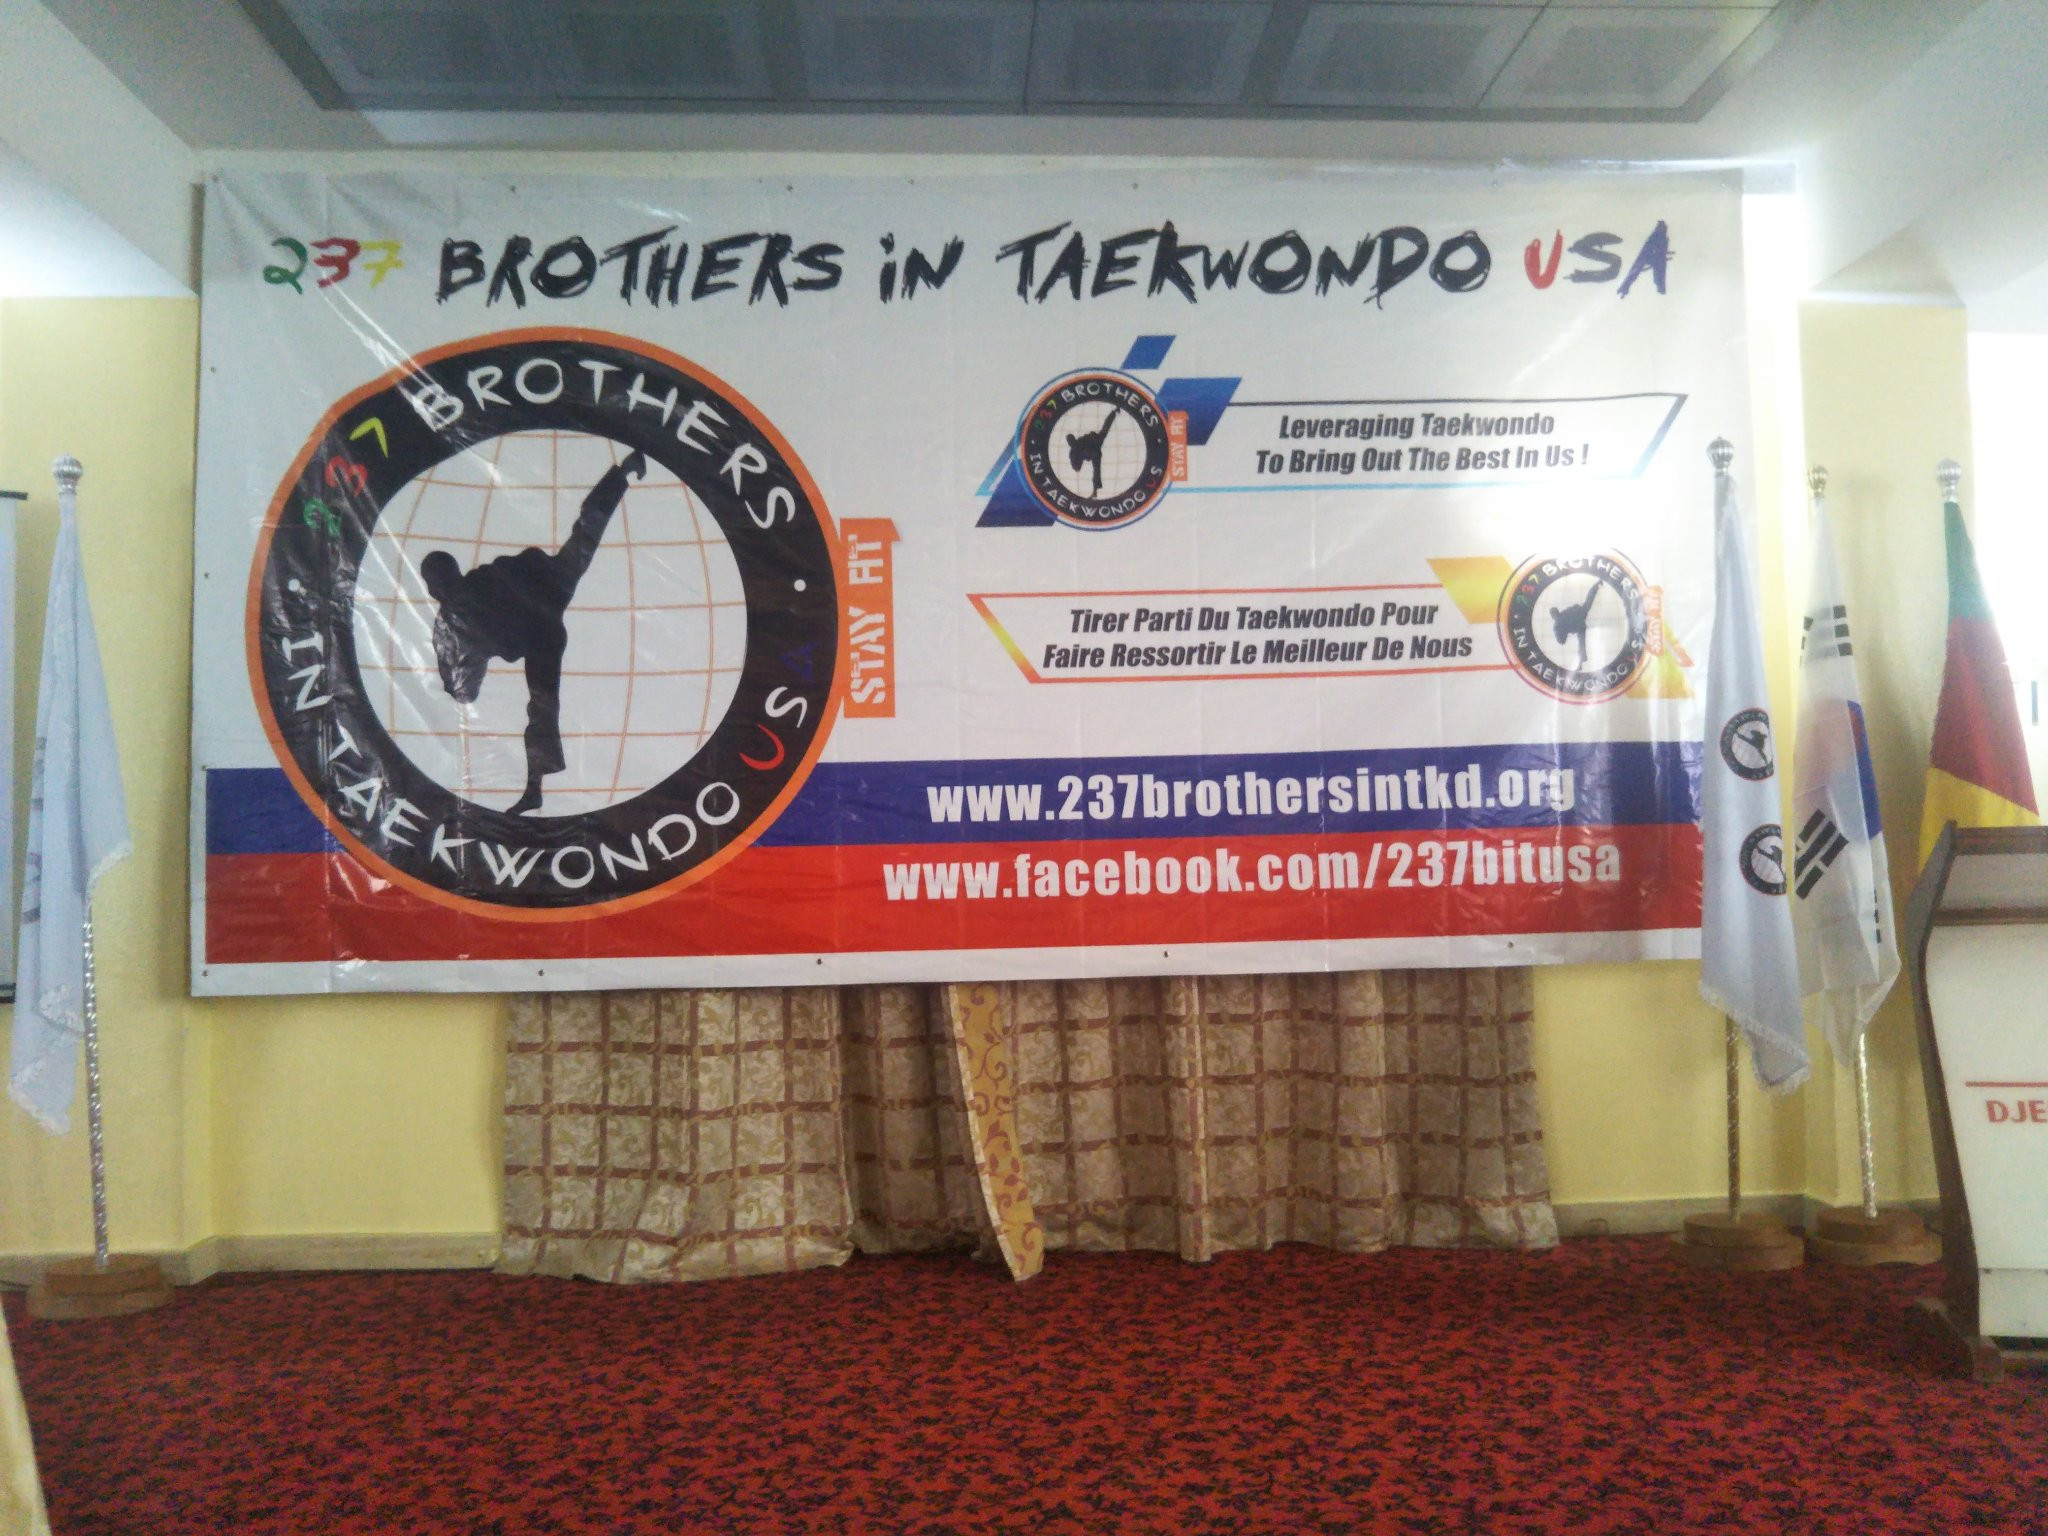 The meeting organised by the 237 Brothers in Taekwondo USA was held at the start of October ©Twitter/MyriamZouga